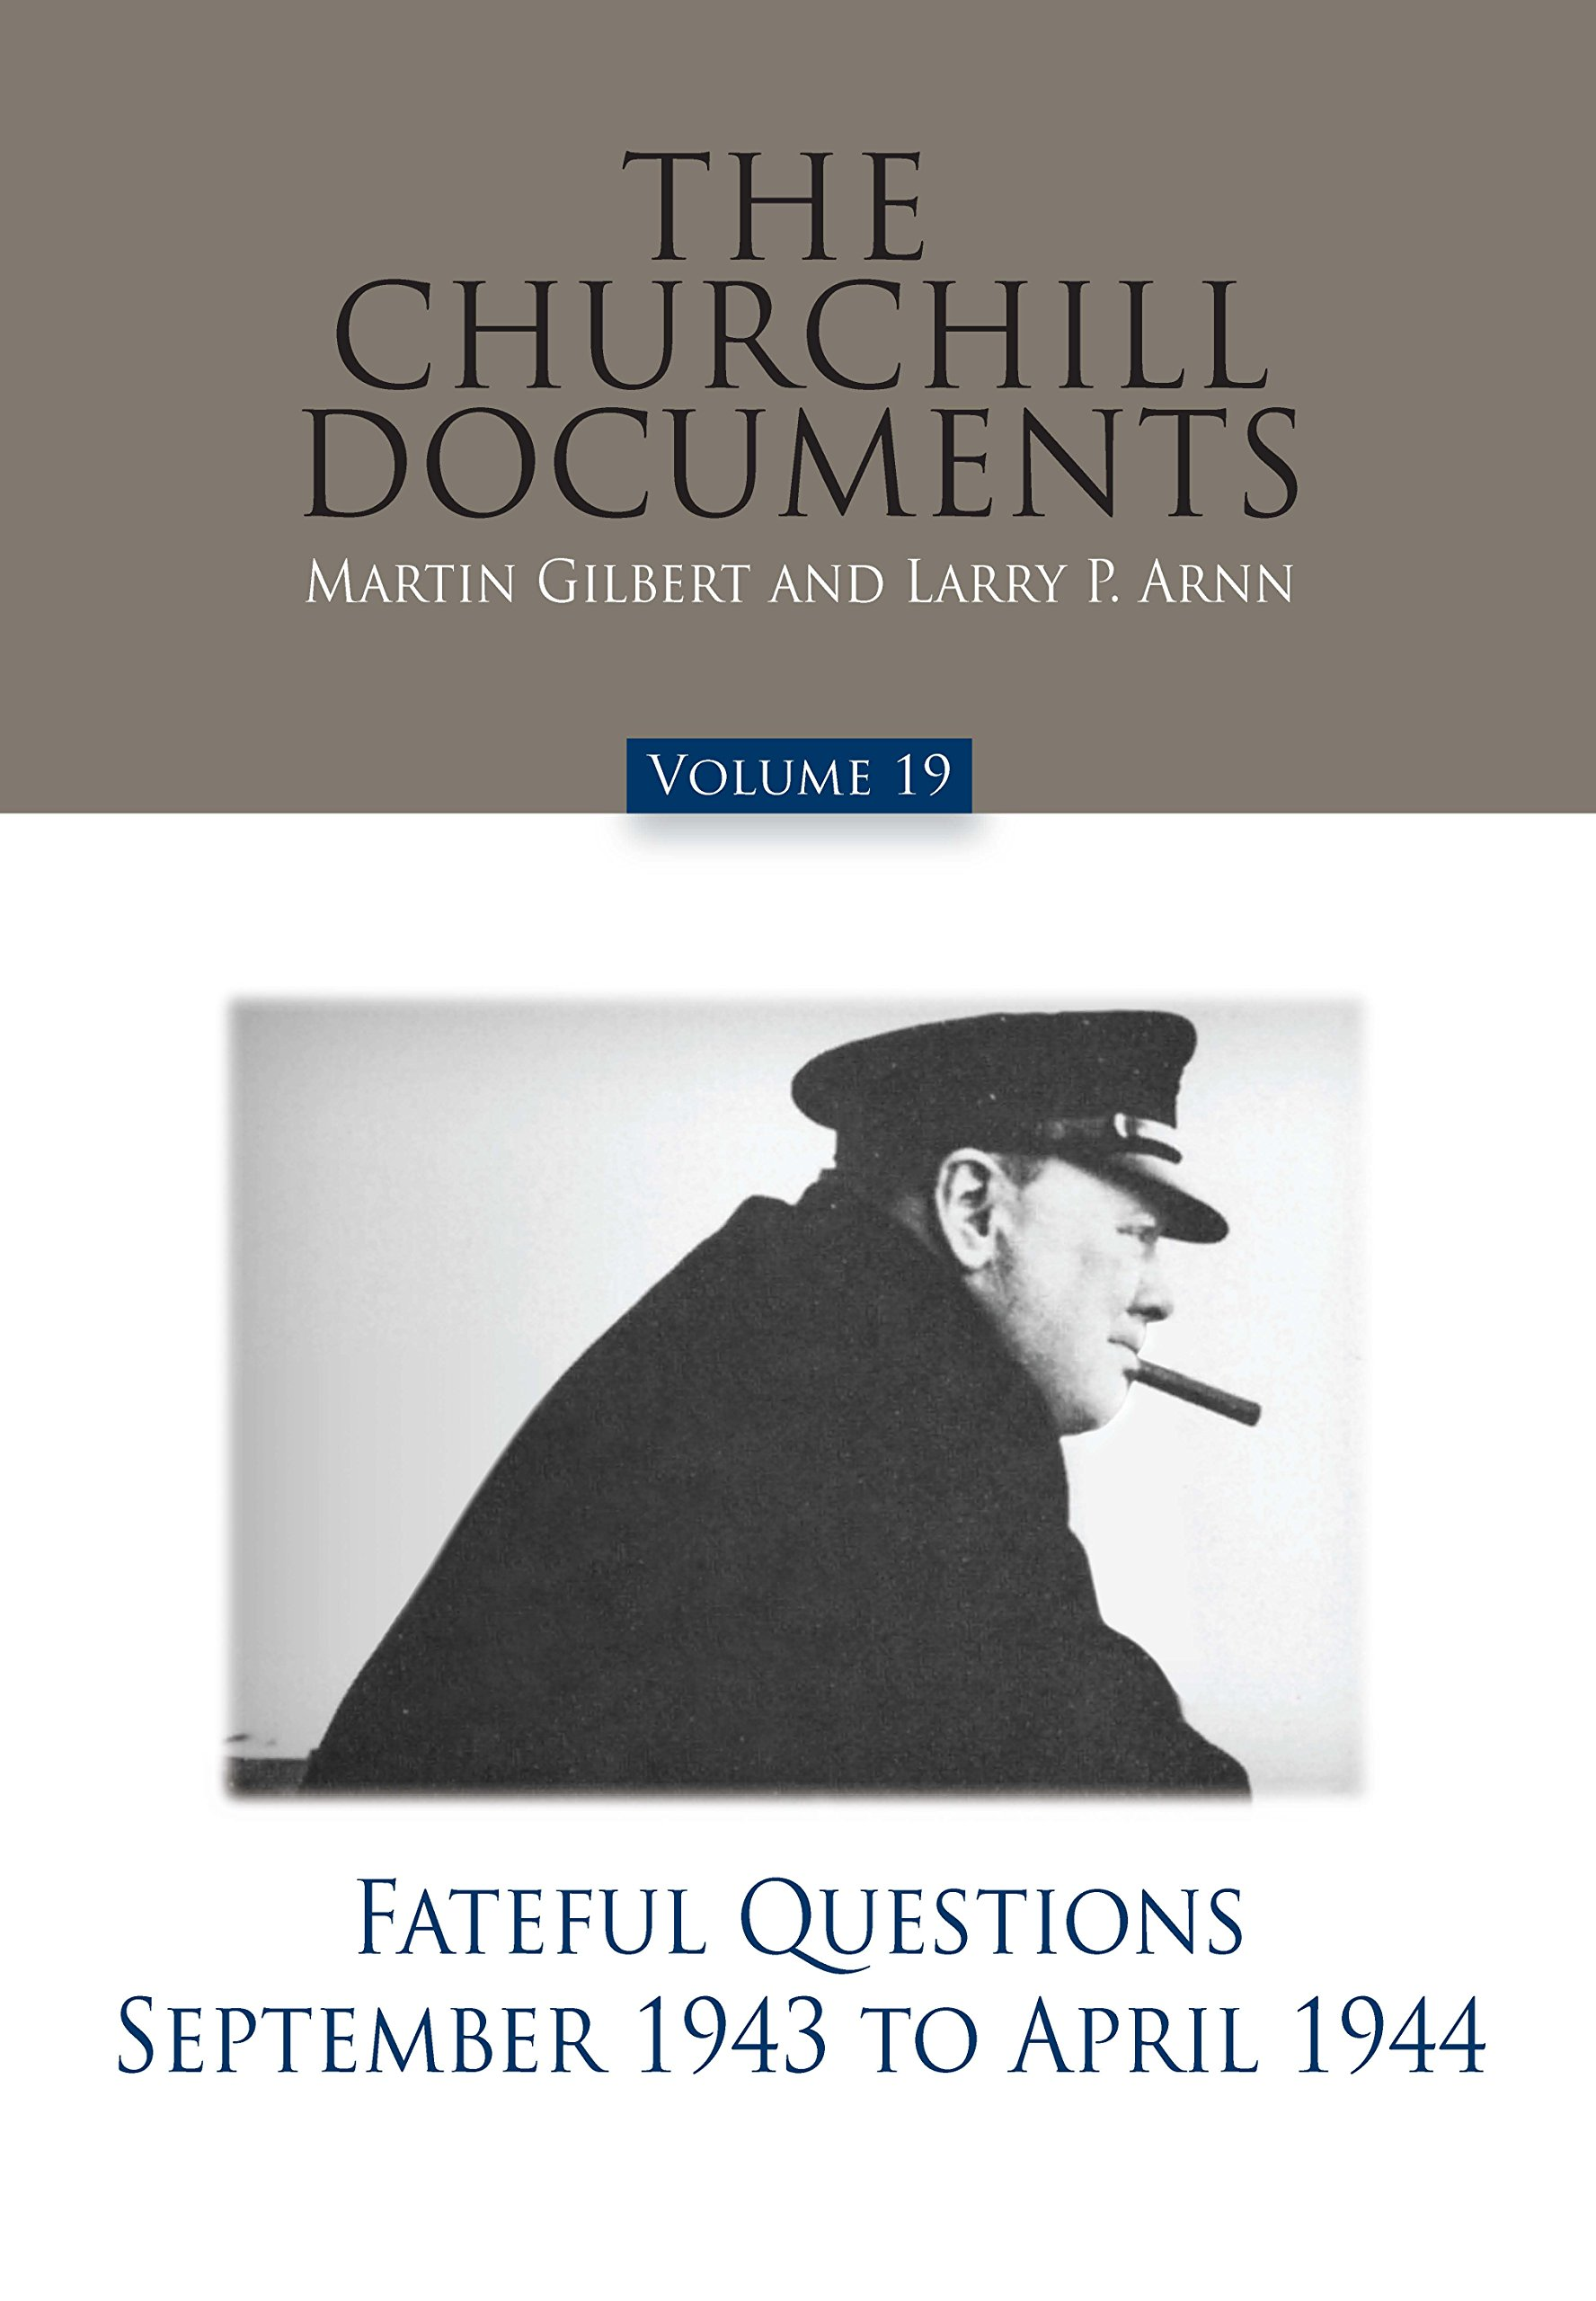 The Churchill Documents, Volume 19: Fateful Questions, September 1943 to April 1944